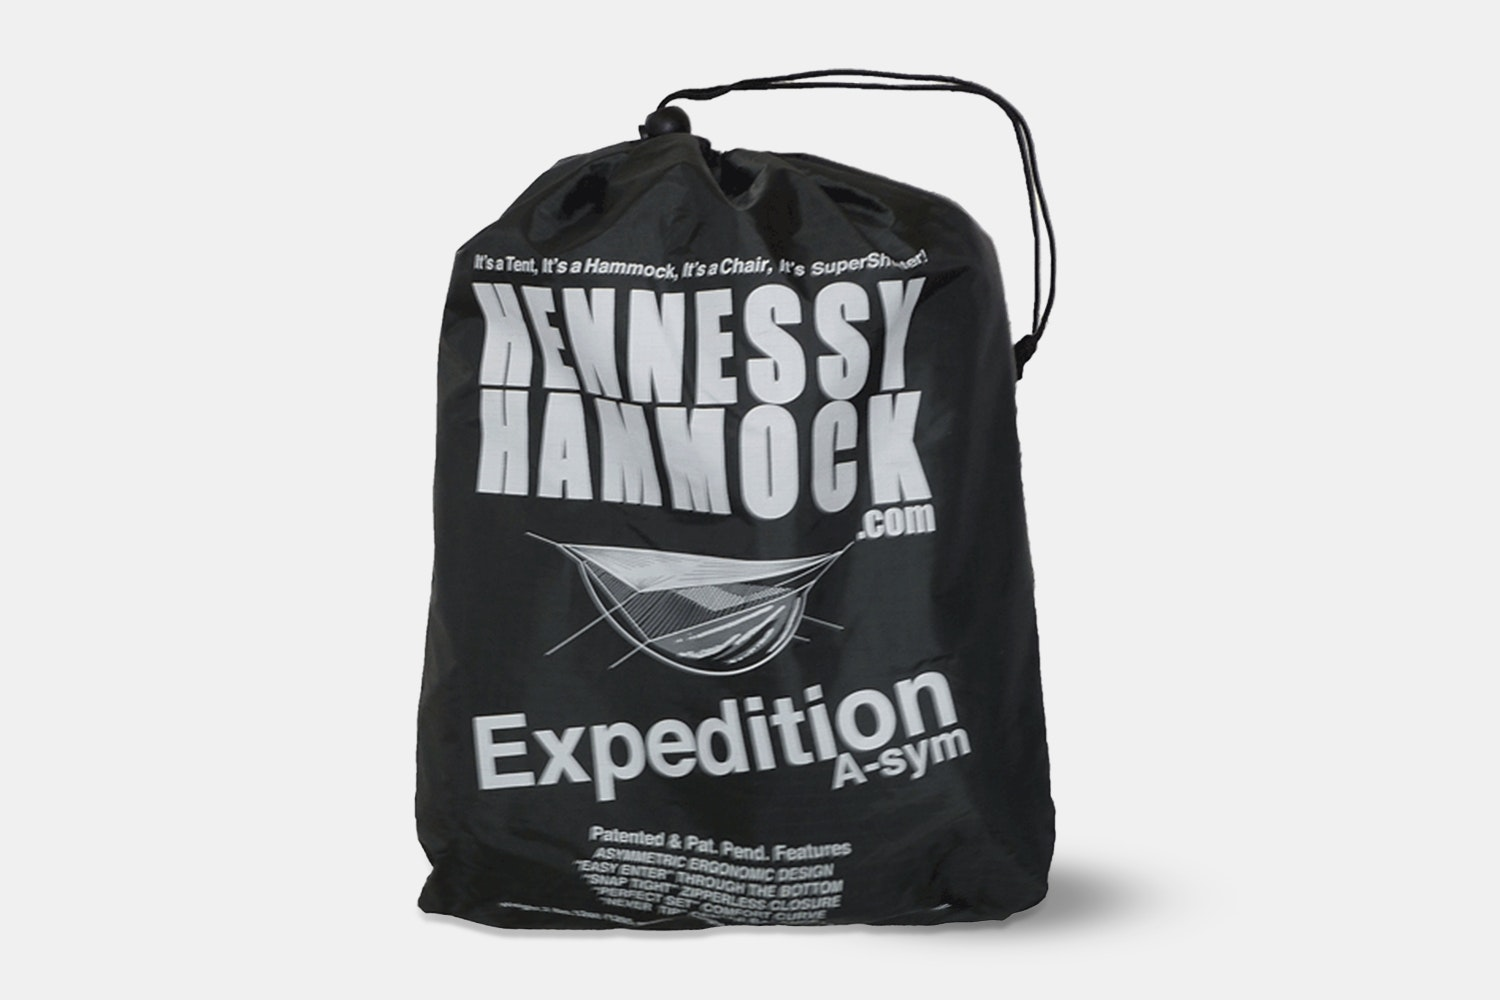 Hennessy Hammock Expedition Asymmetrical Classic